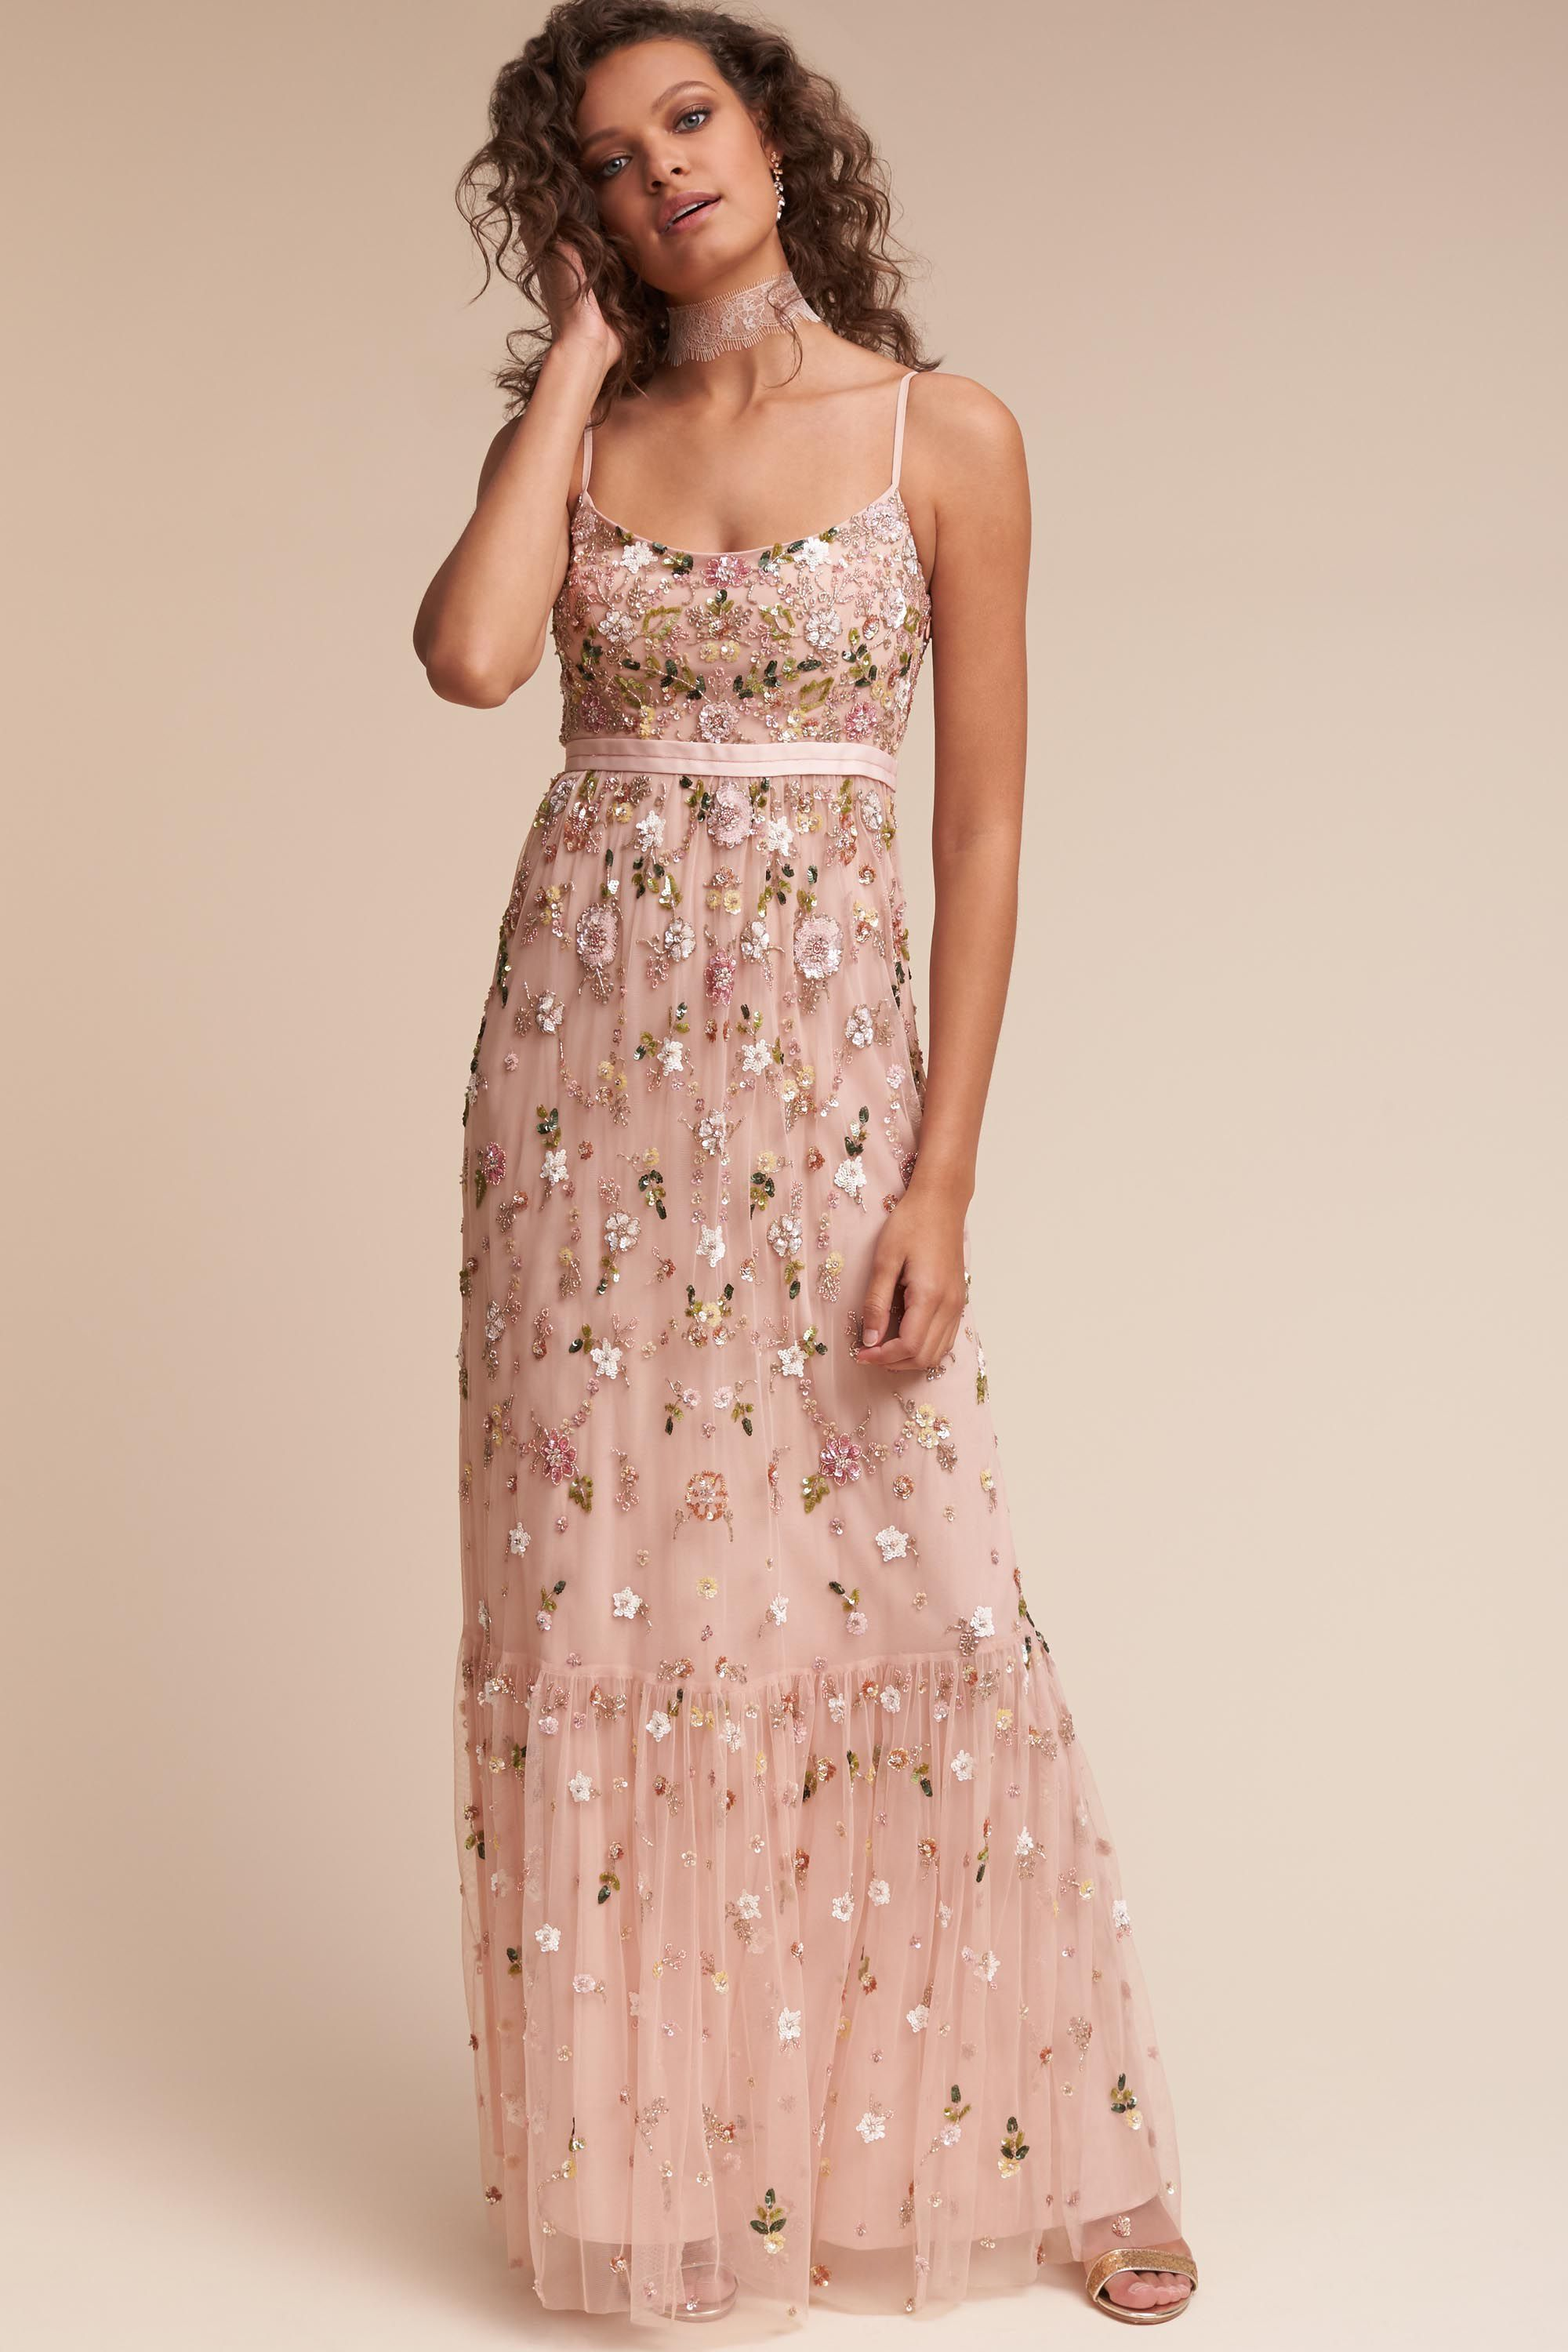 Long dress for wedding guest  BHLDN Kimya Dress in Party Dresses View All Dresses Embellished